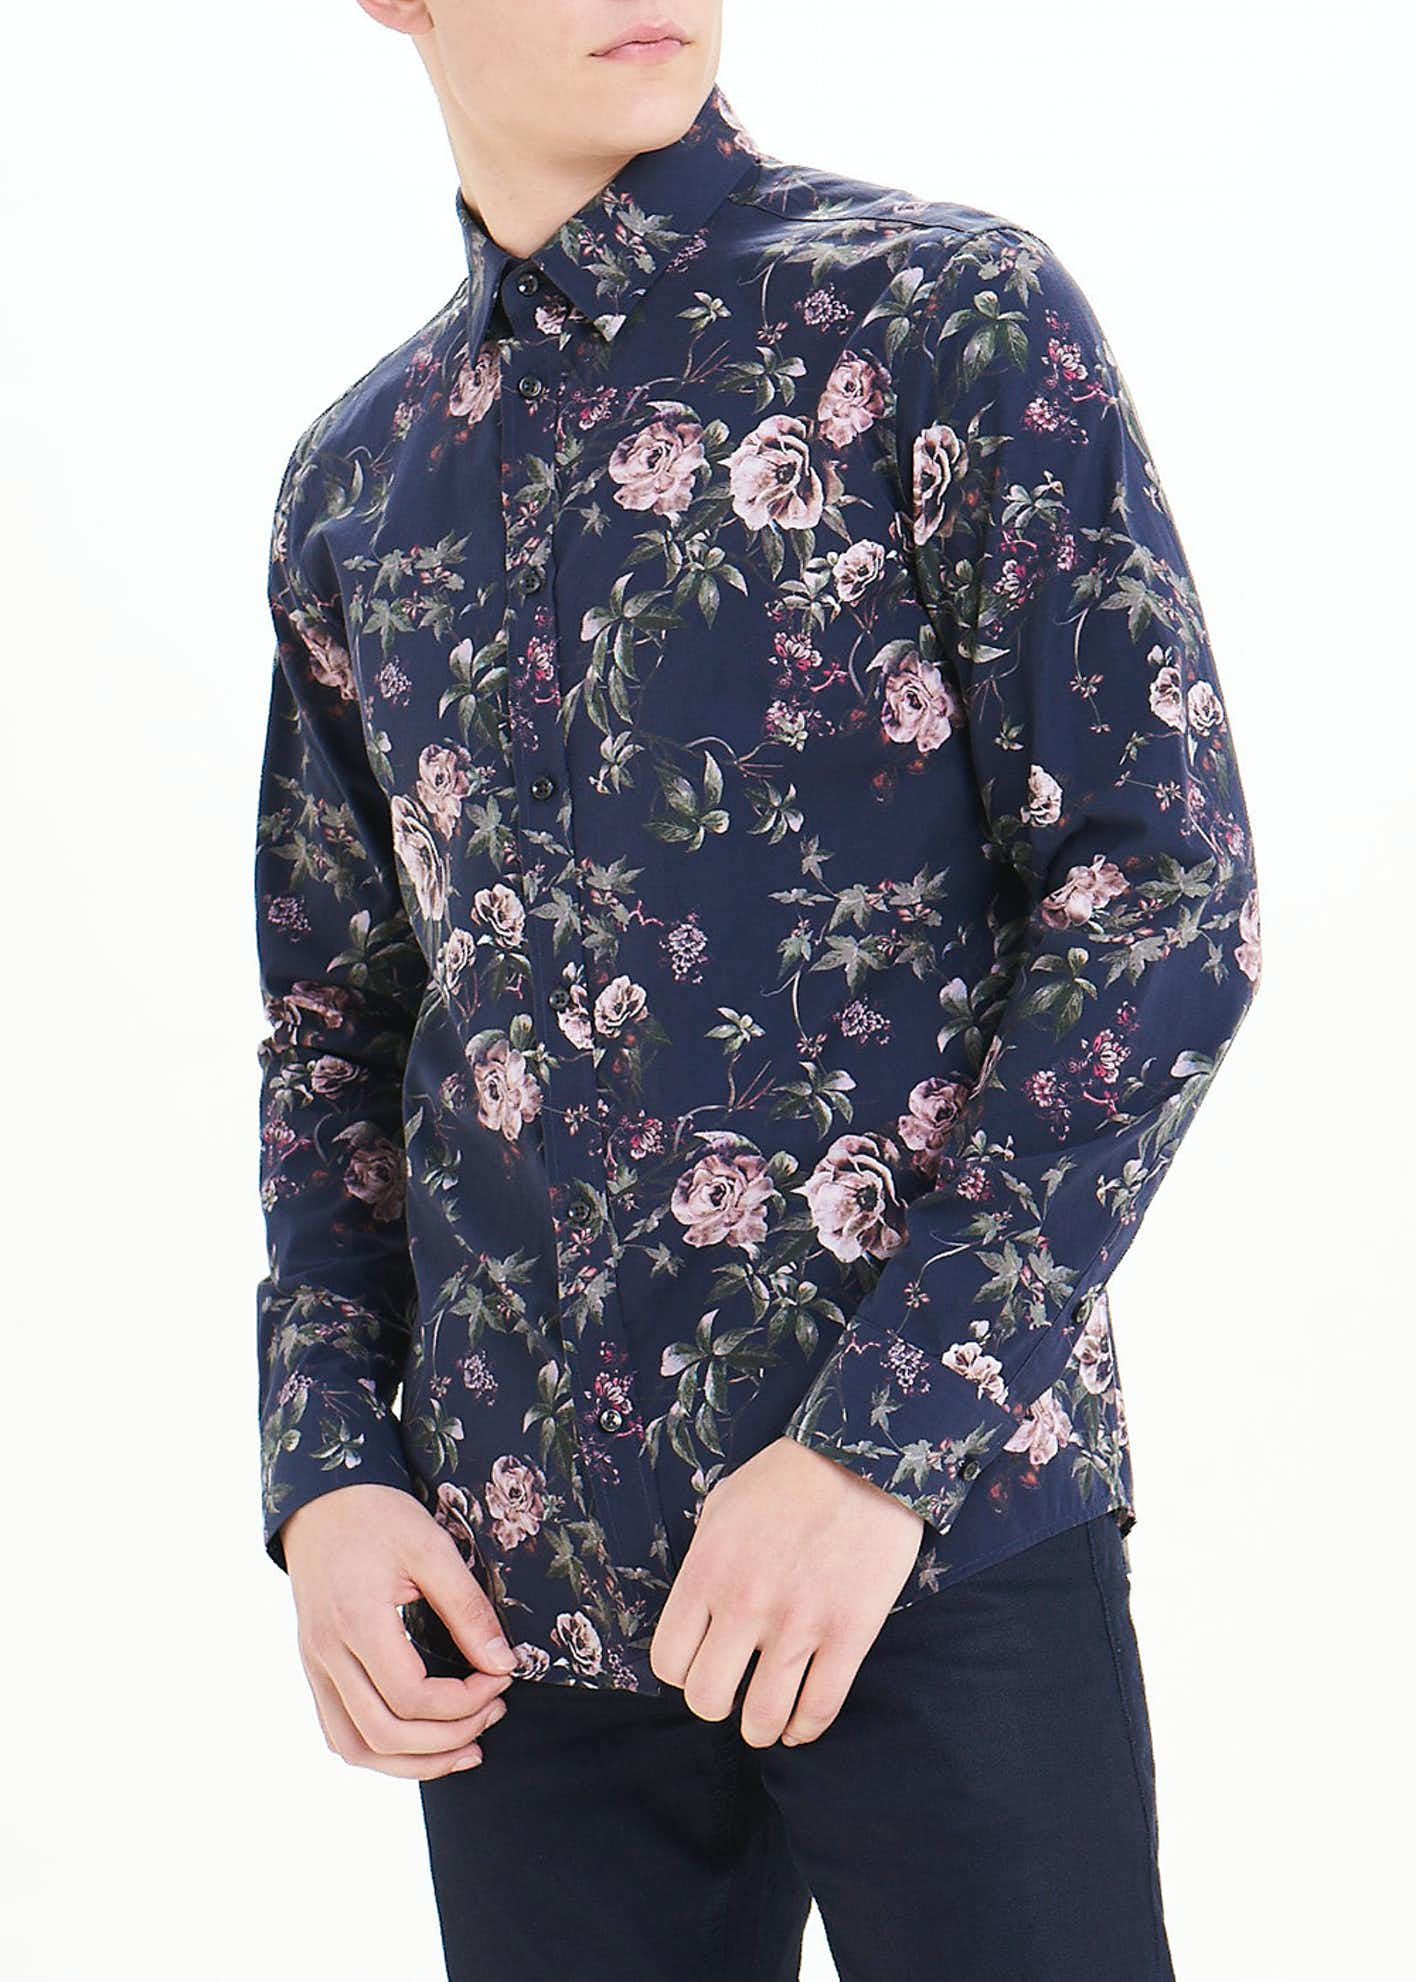 Easy Black Label Slim Fit Floral Long Sleeve Shirt